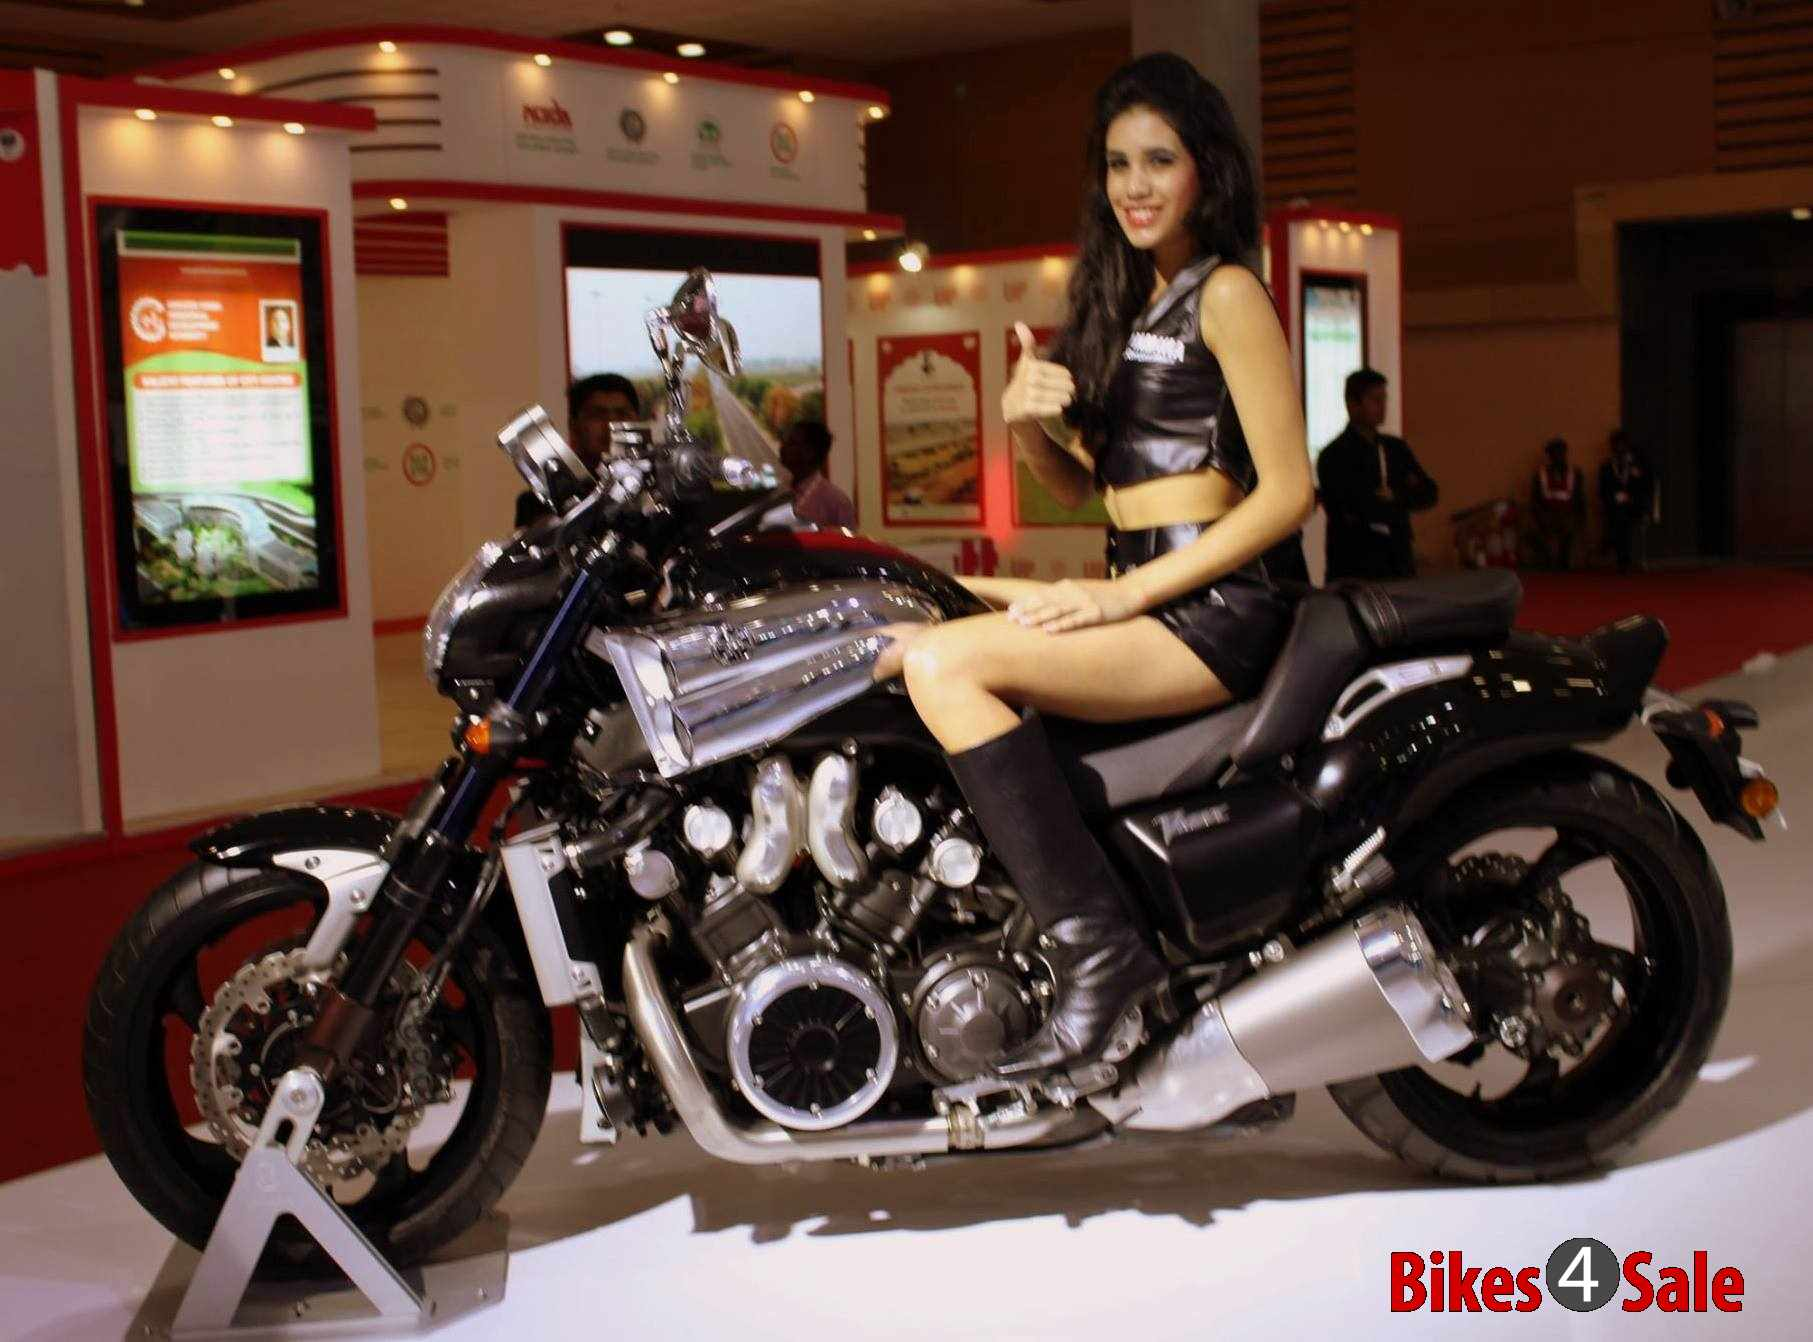 Honda 4 Wheeler For Sale >> Motorcycles and Scooters Unvieled in Auto Expo 2016 - Bikes4Sale